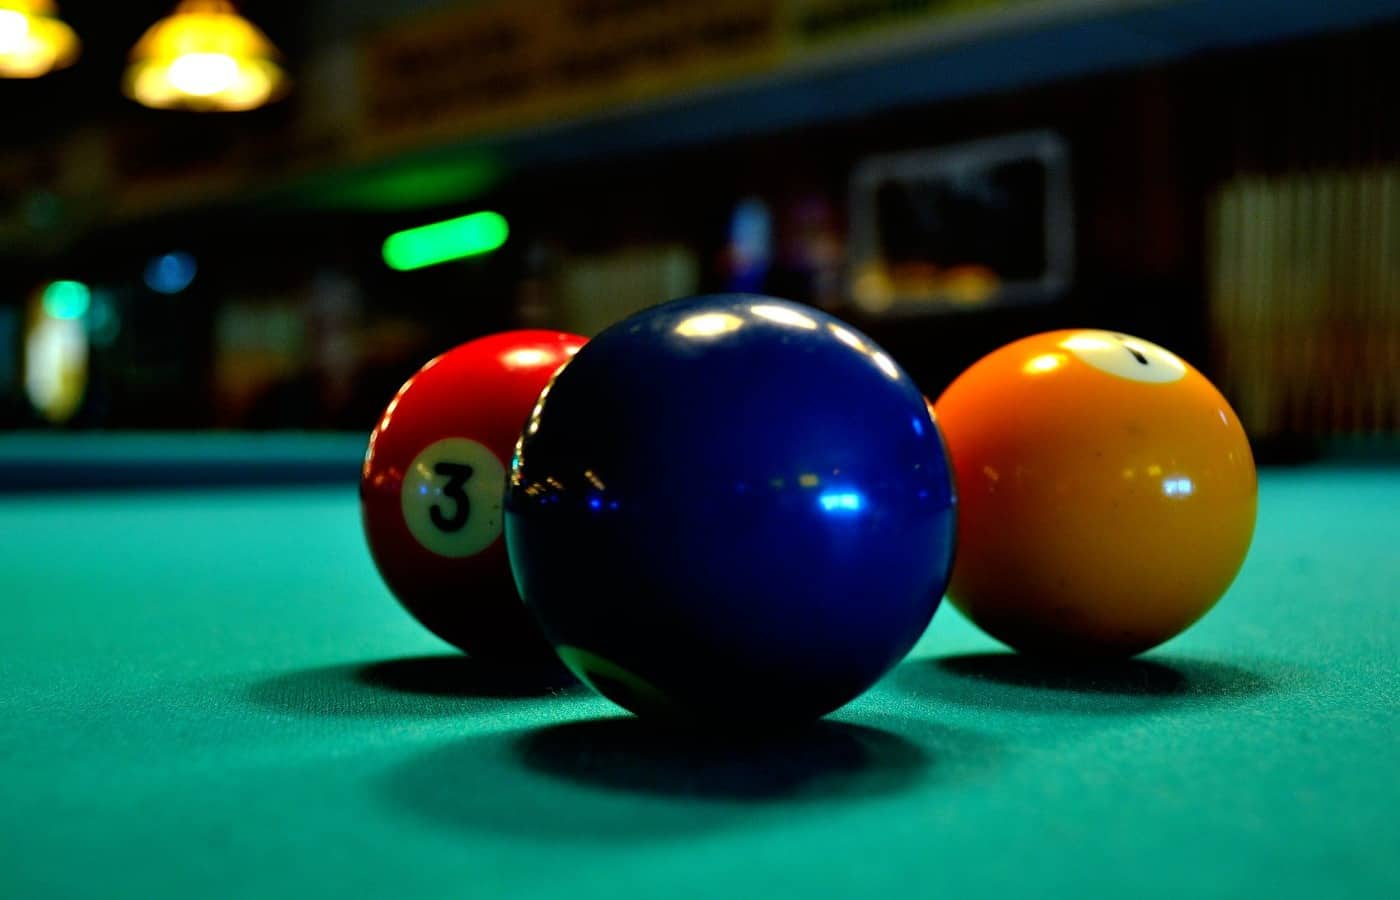 what is ball tapping in pool